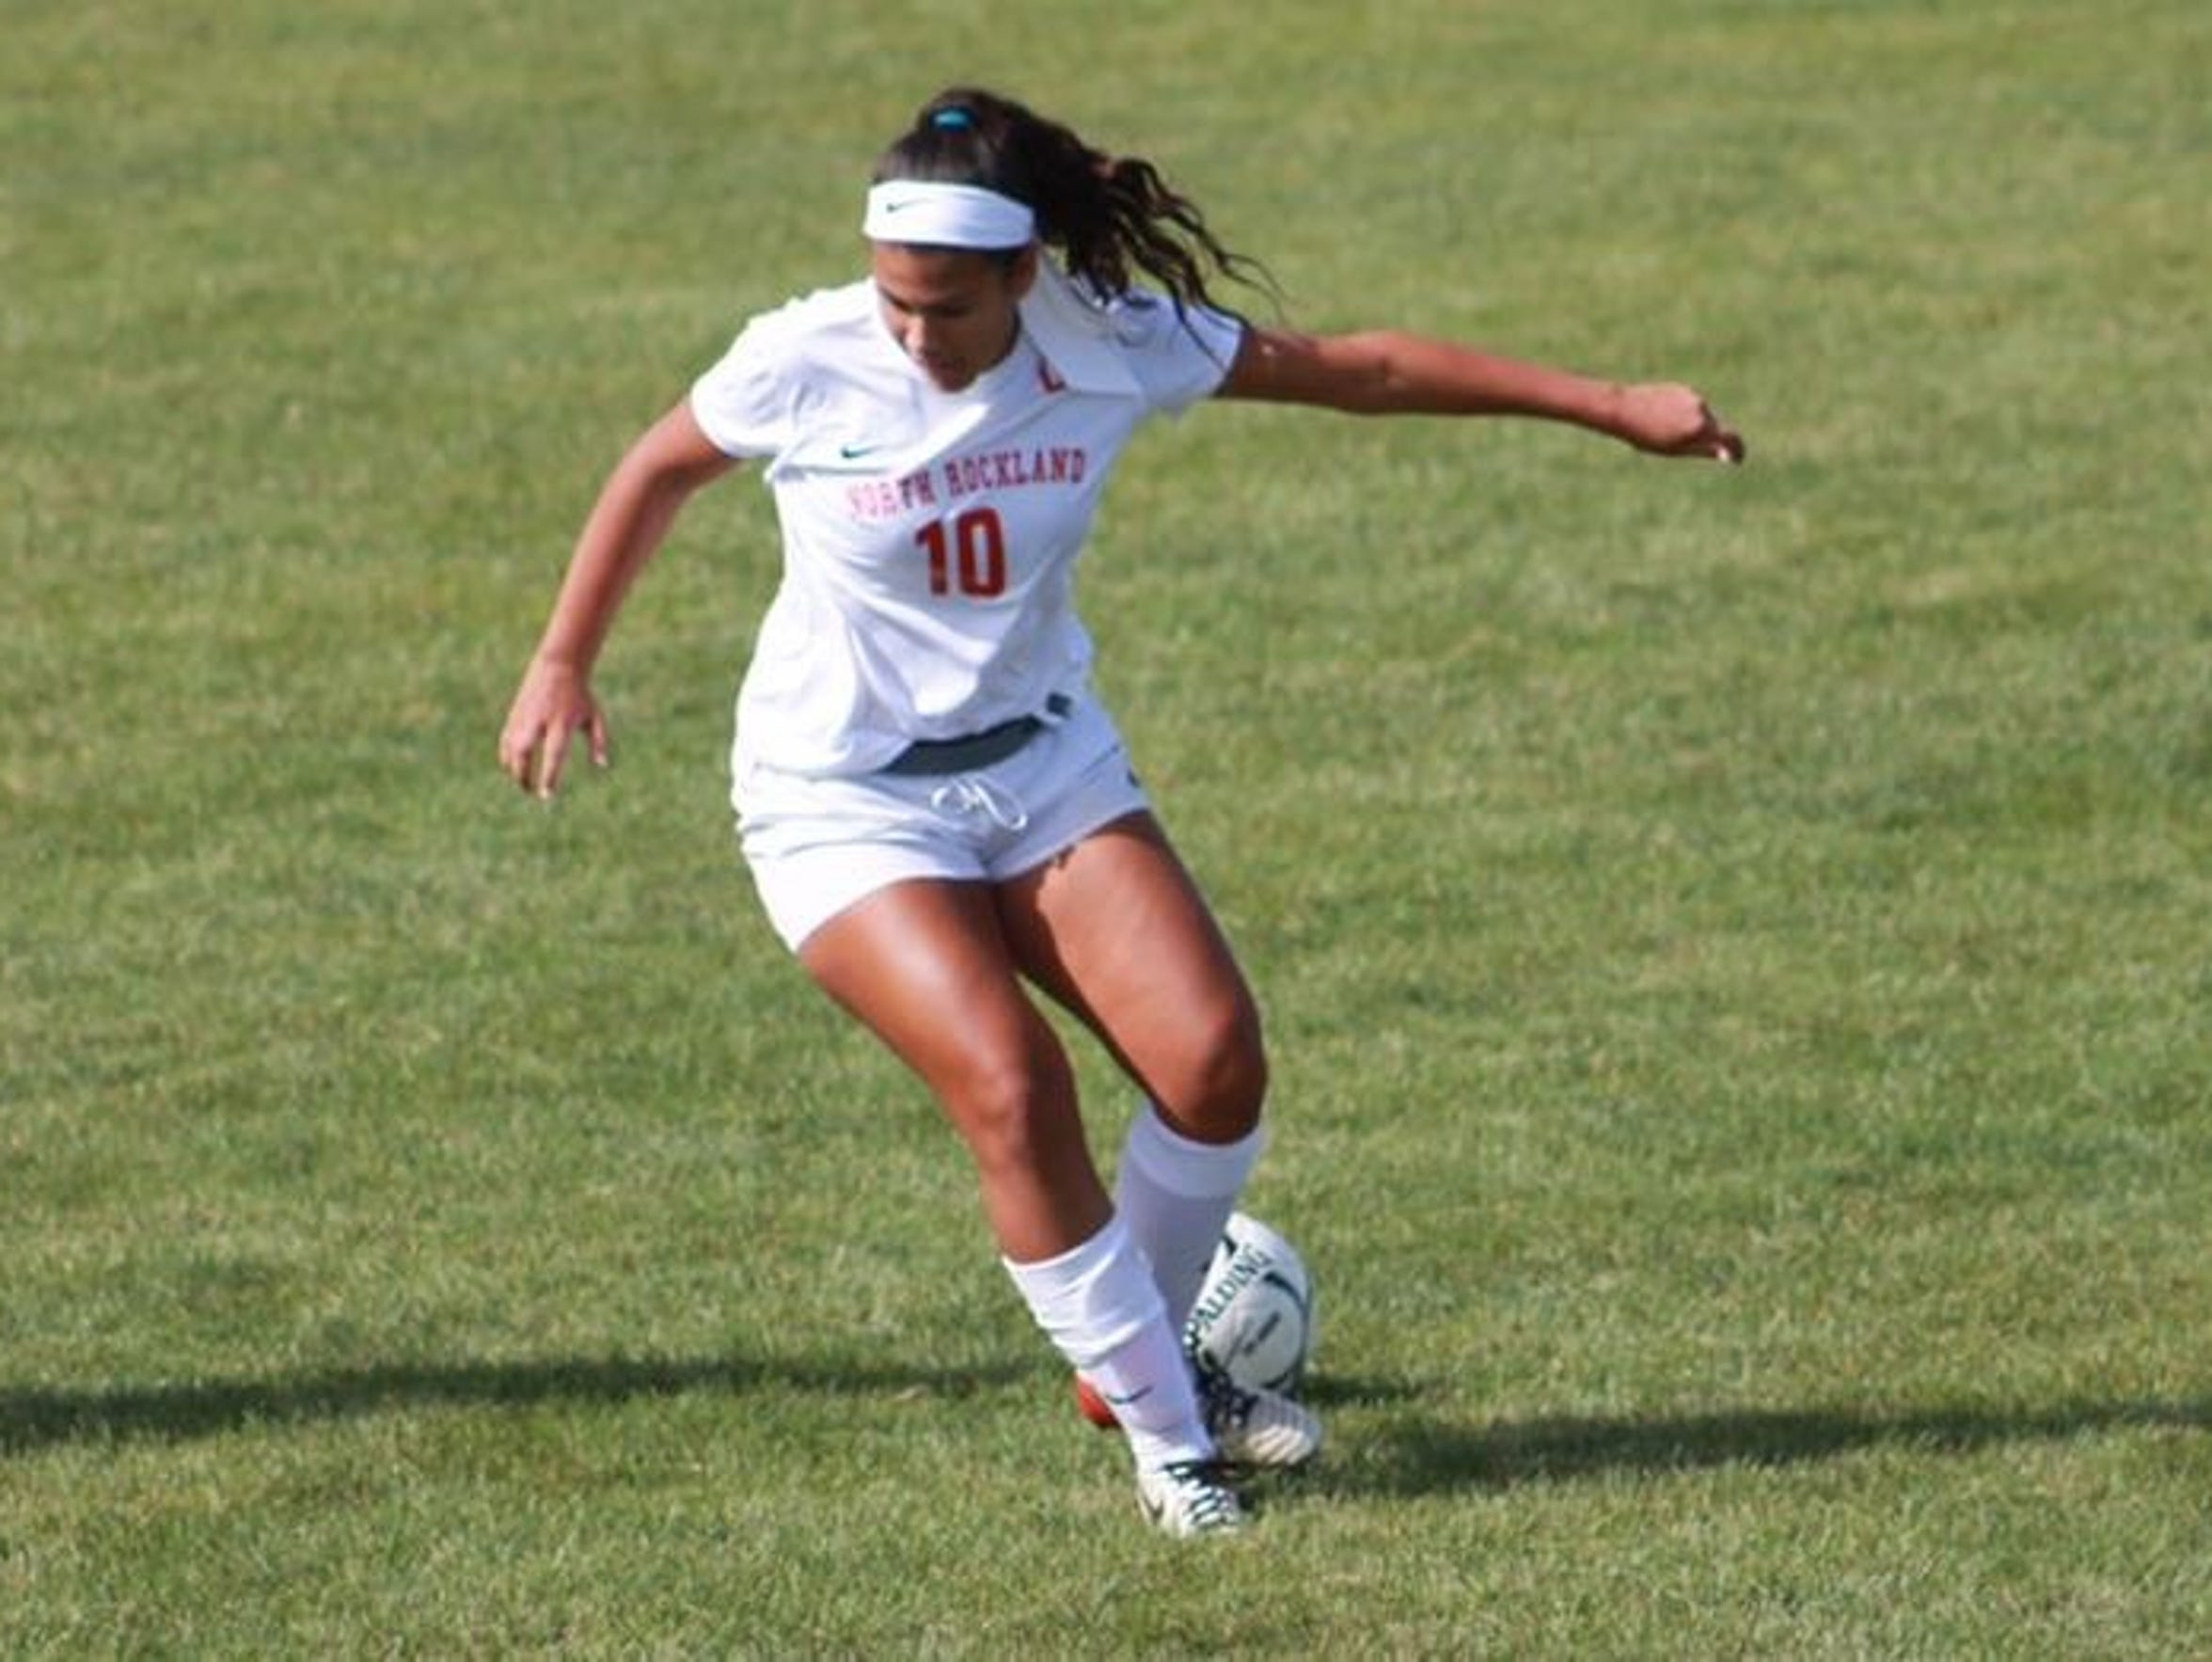 Daniella Devaney is a standout midfielder and forward